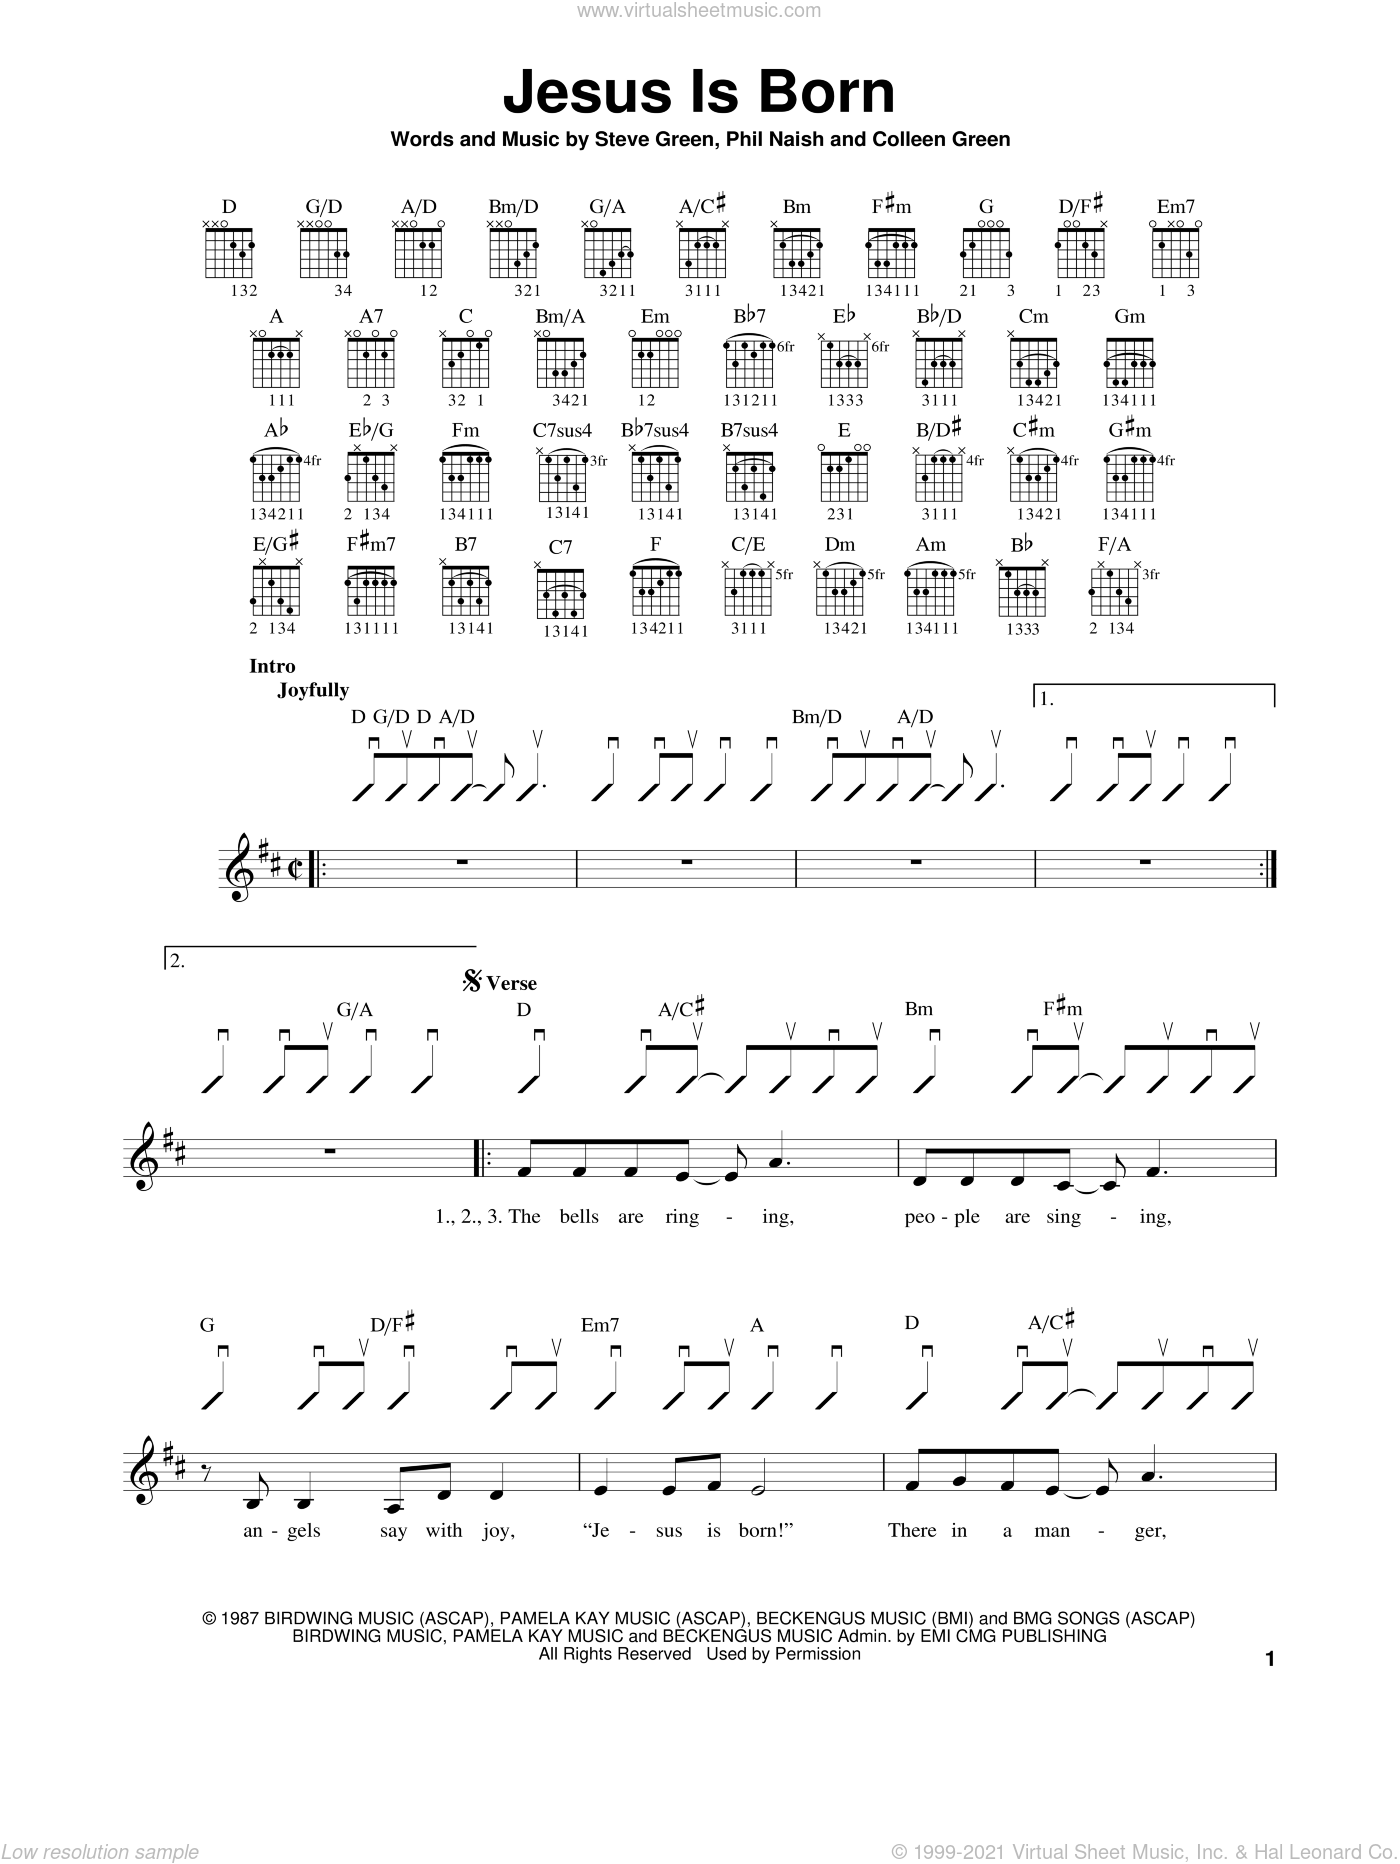 Jesus Is Born sheet music for guitar solo (chords) by Phil Naish and Steve Green. Score Image Preview.